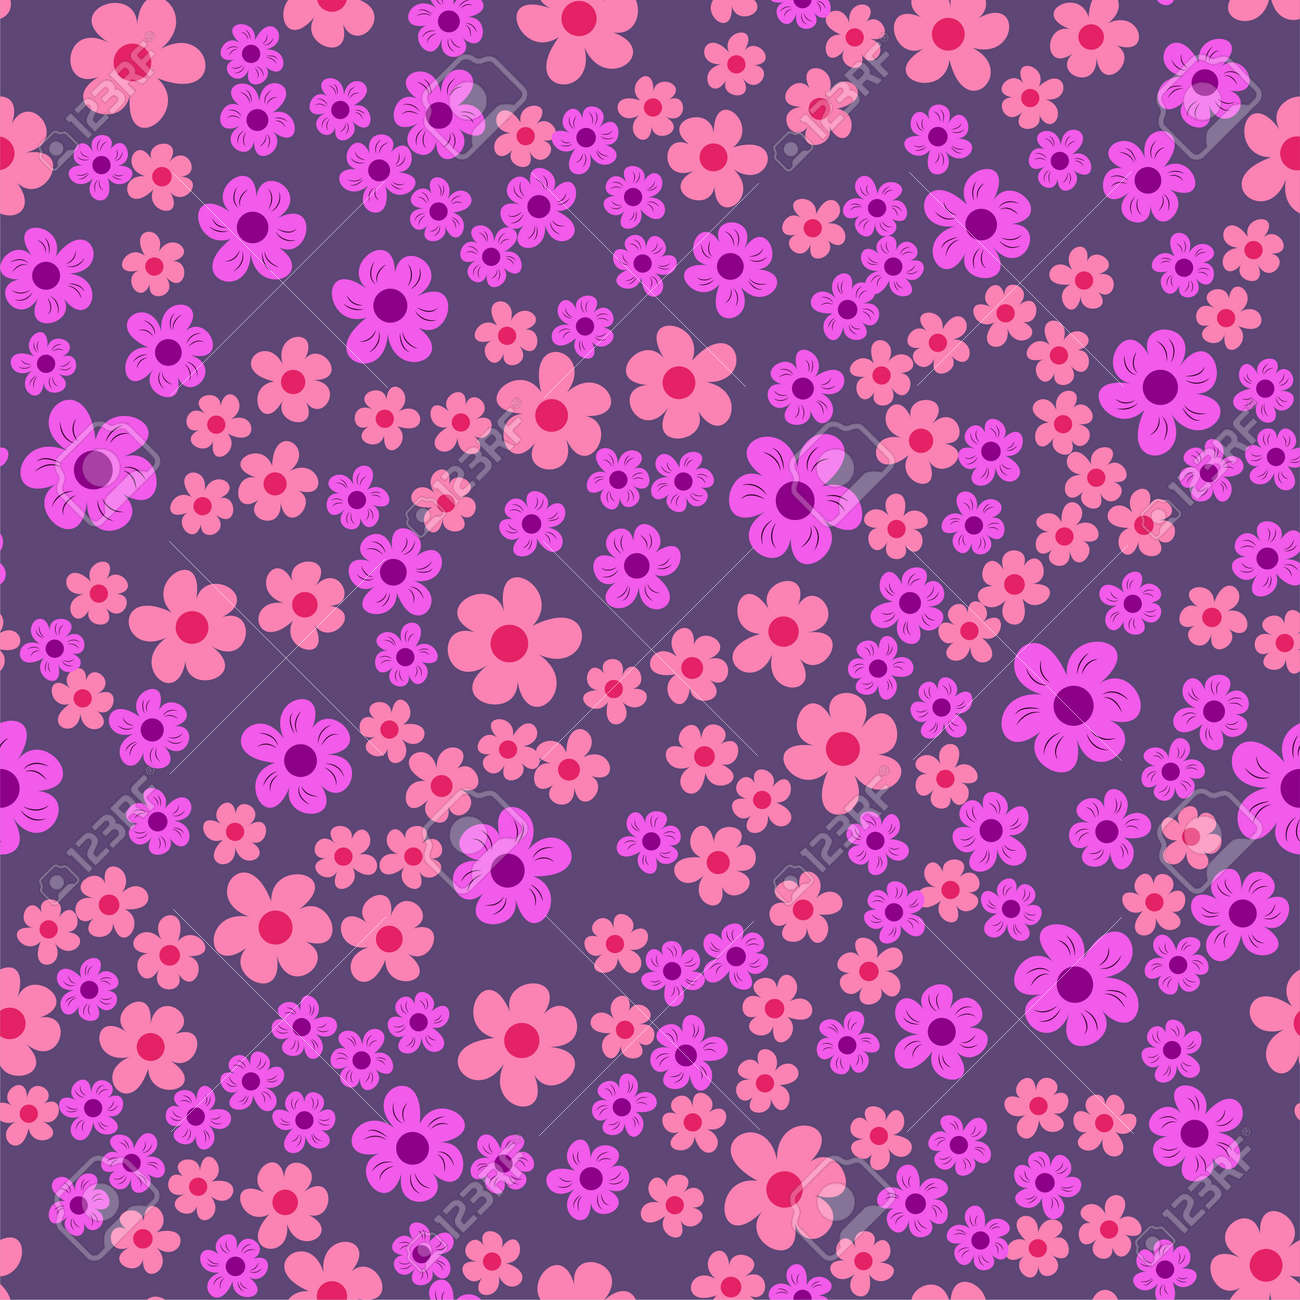 Abstract seamless pattern of flowers on a purple background abstract seamless pattern of flowers on a purple background for prints cards invitations izmirmasajfo